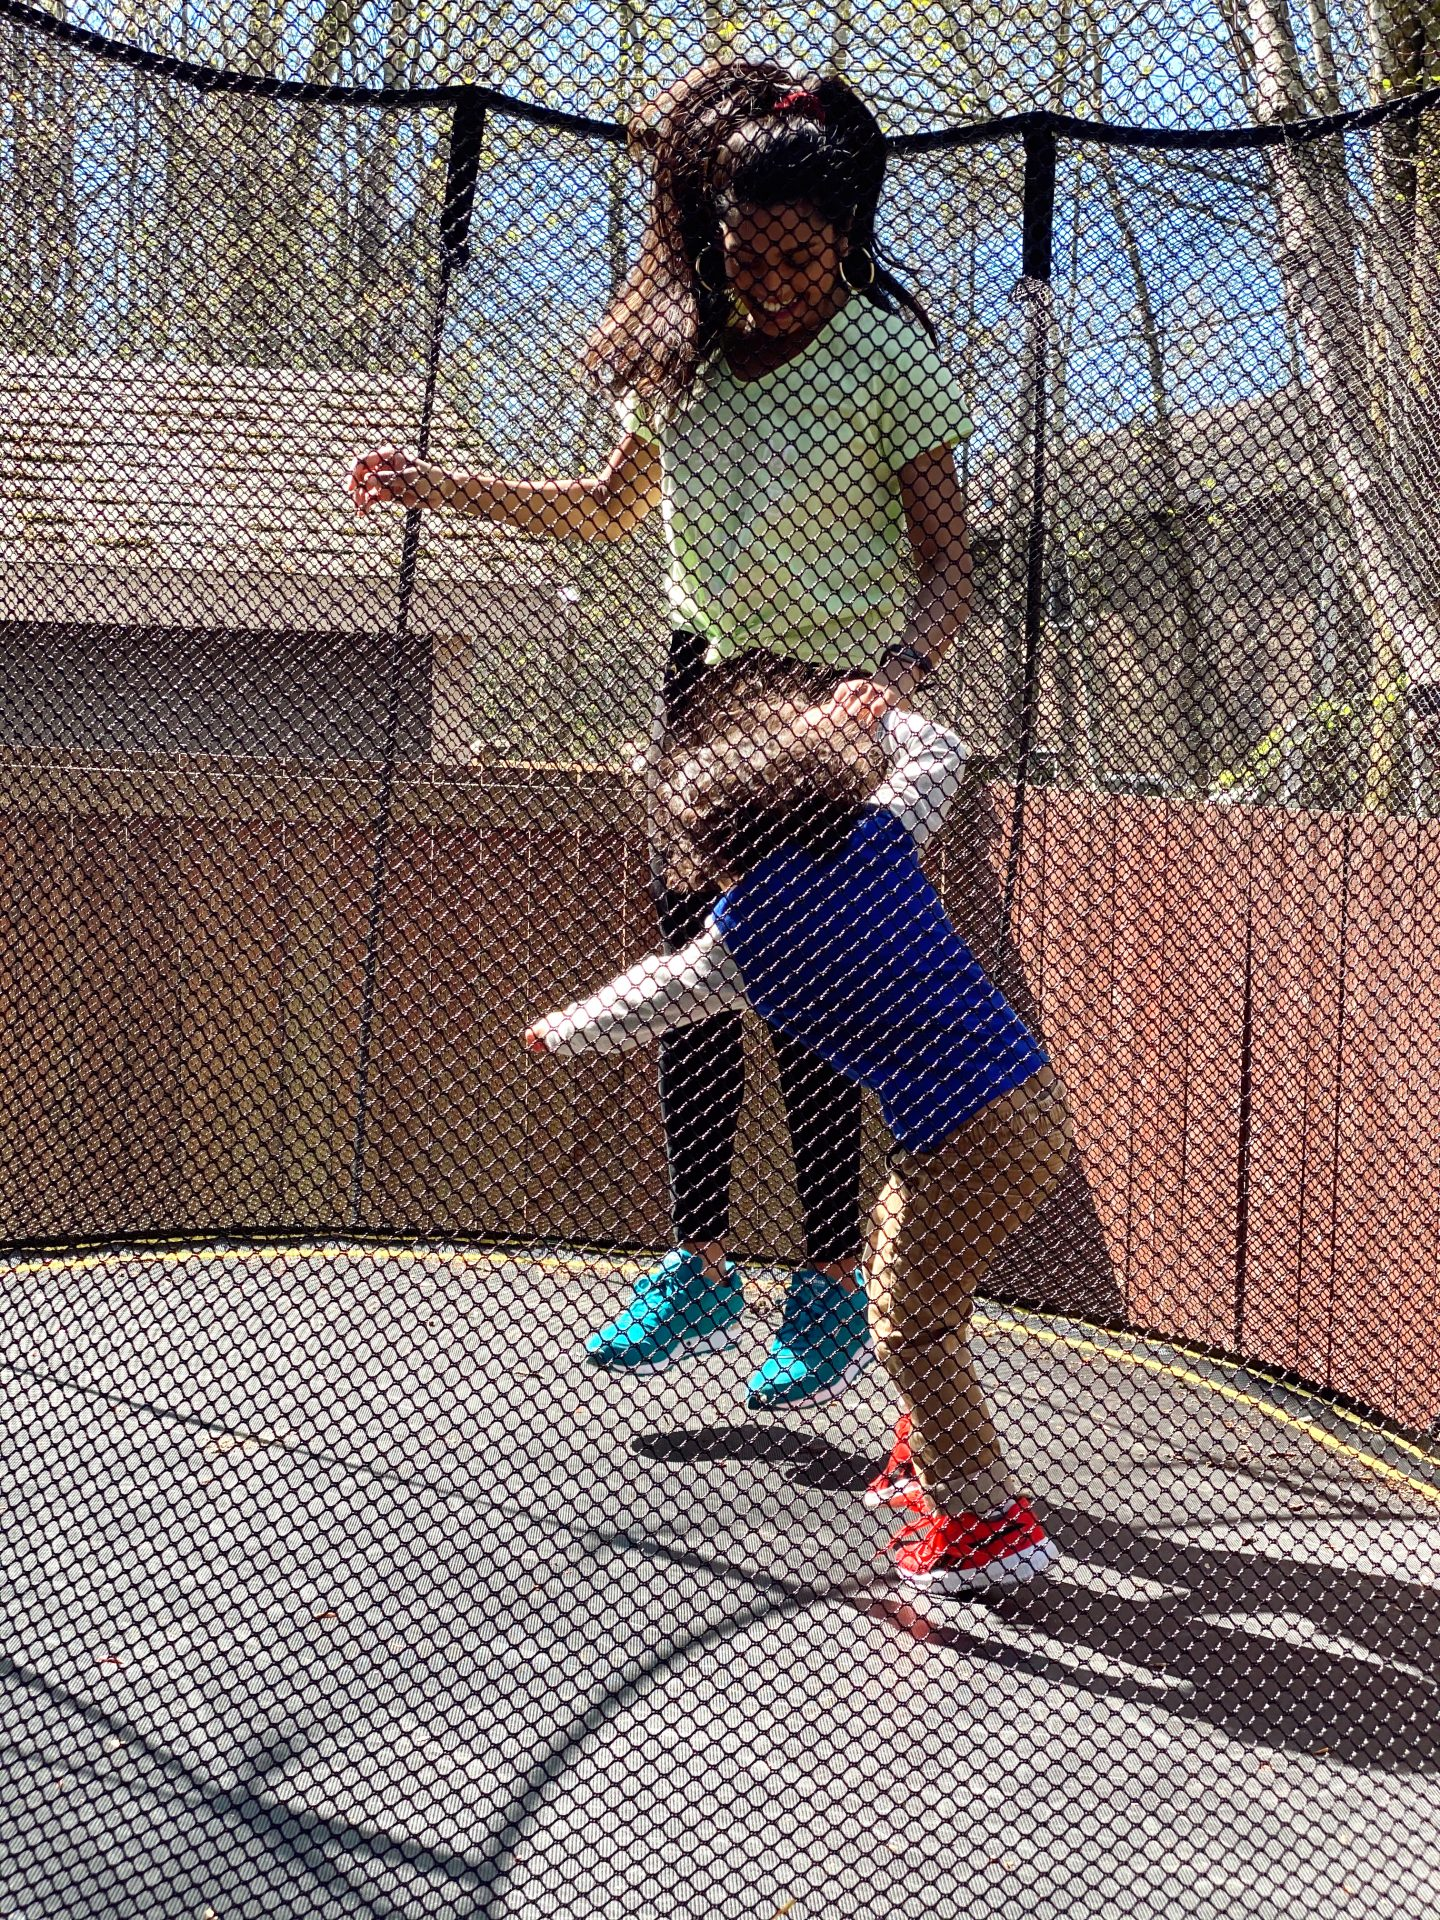 Coronavirus_Motherhood_parenting_dear_mom_you_are_not _alone_trampoline